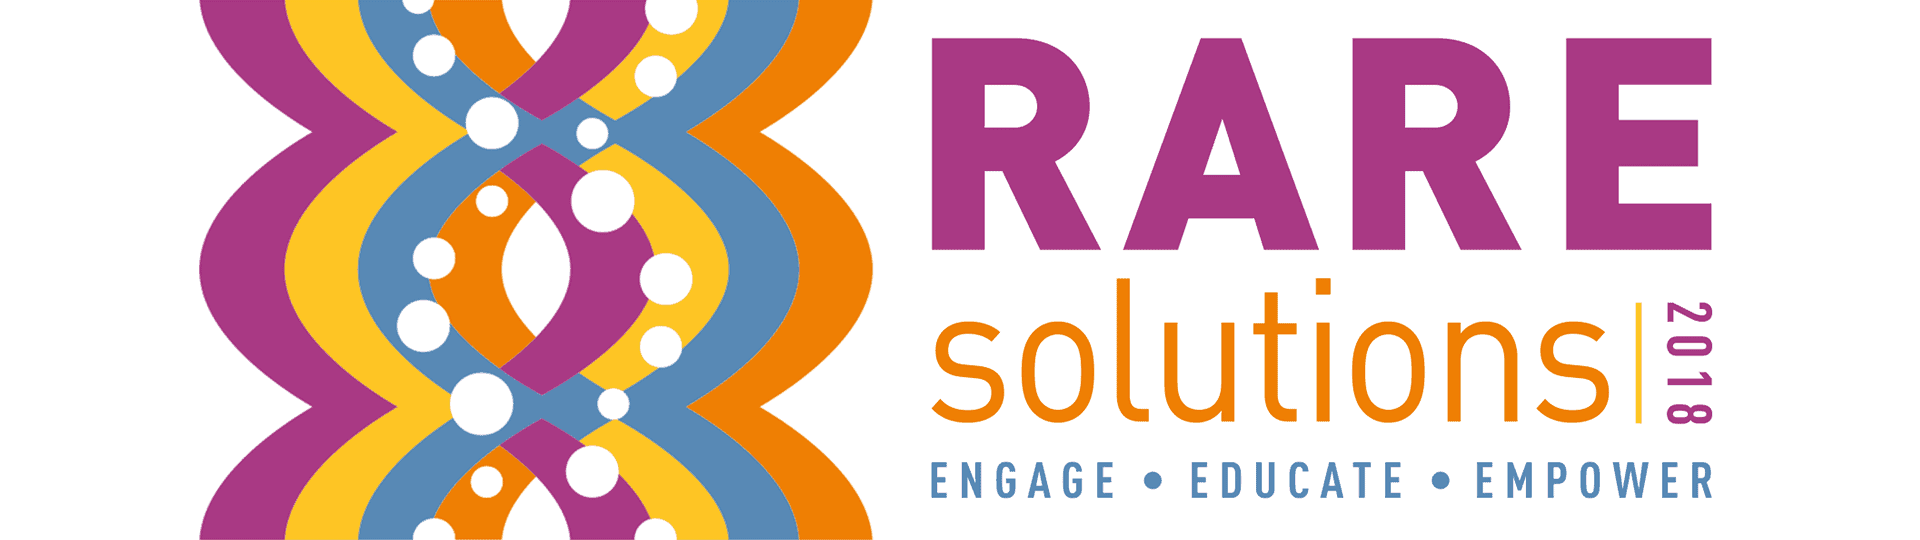 Cambridge Rare Disease Network - RAREfest | RAREsolutions competition 1